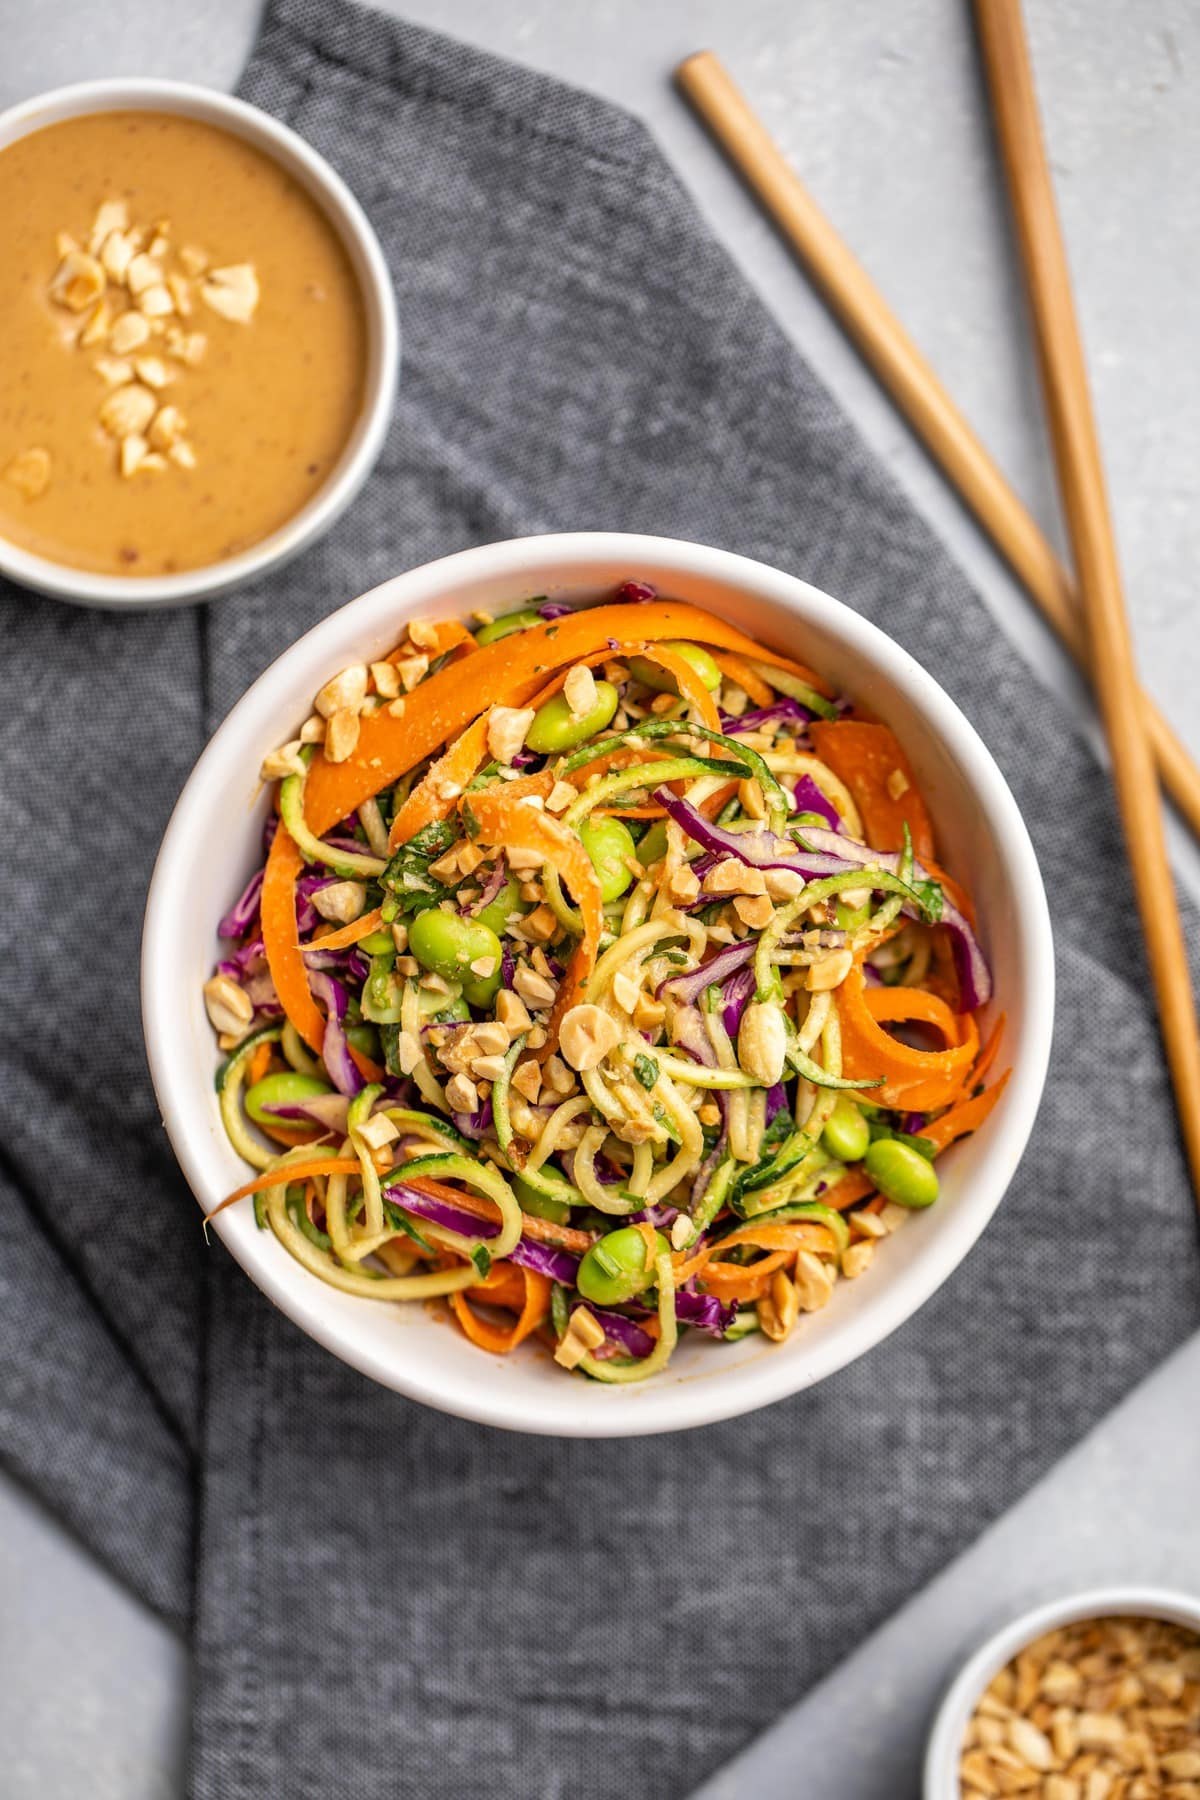 single bowl of zucchini noodle salad with bowls of peanut sauce and chopped peanuts